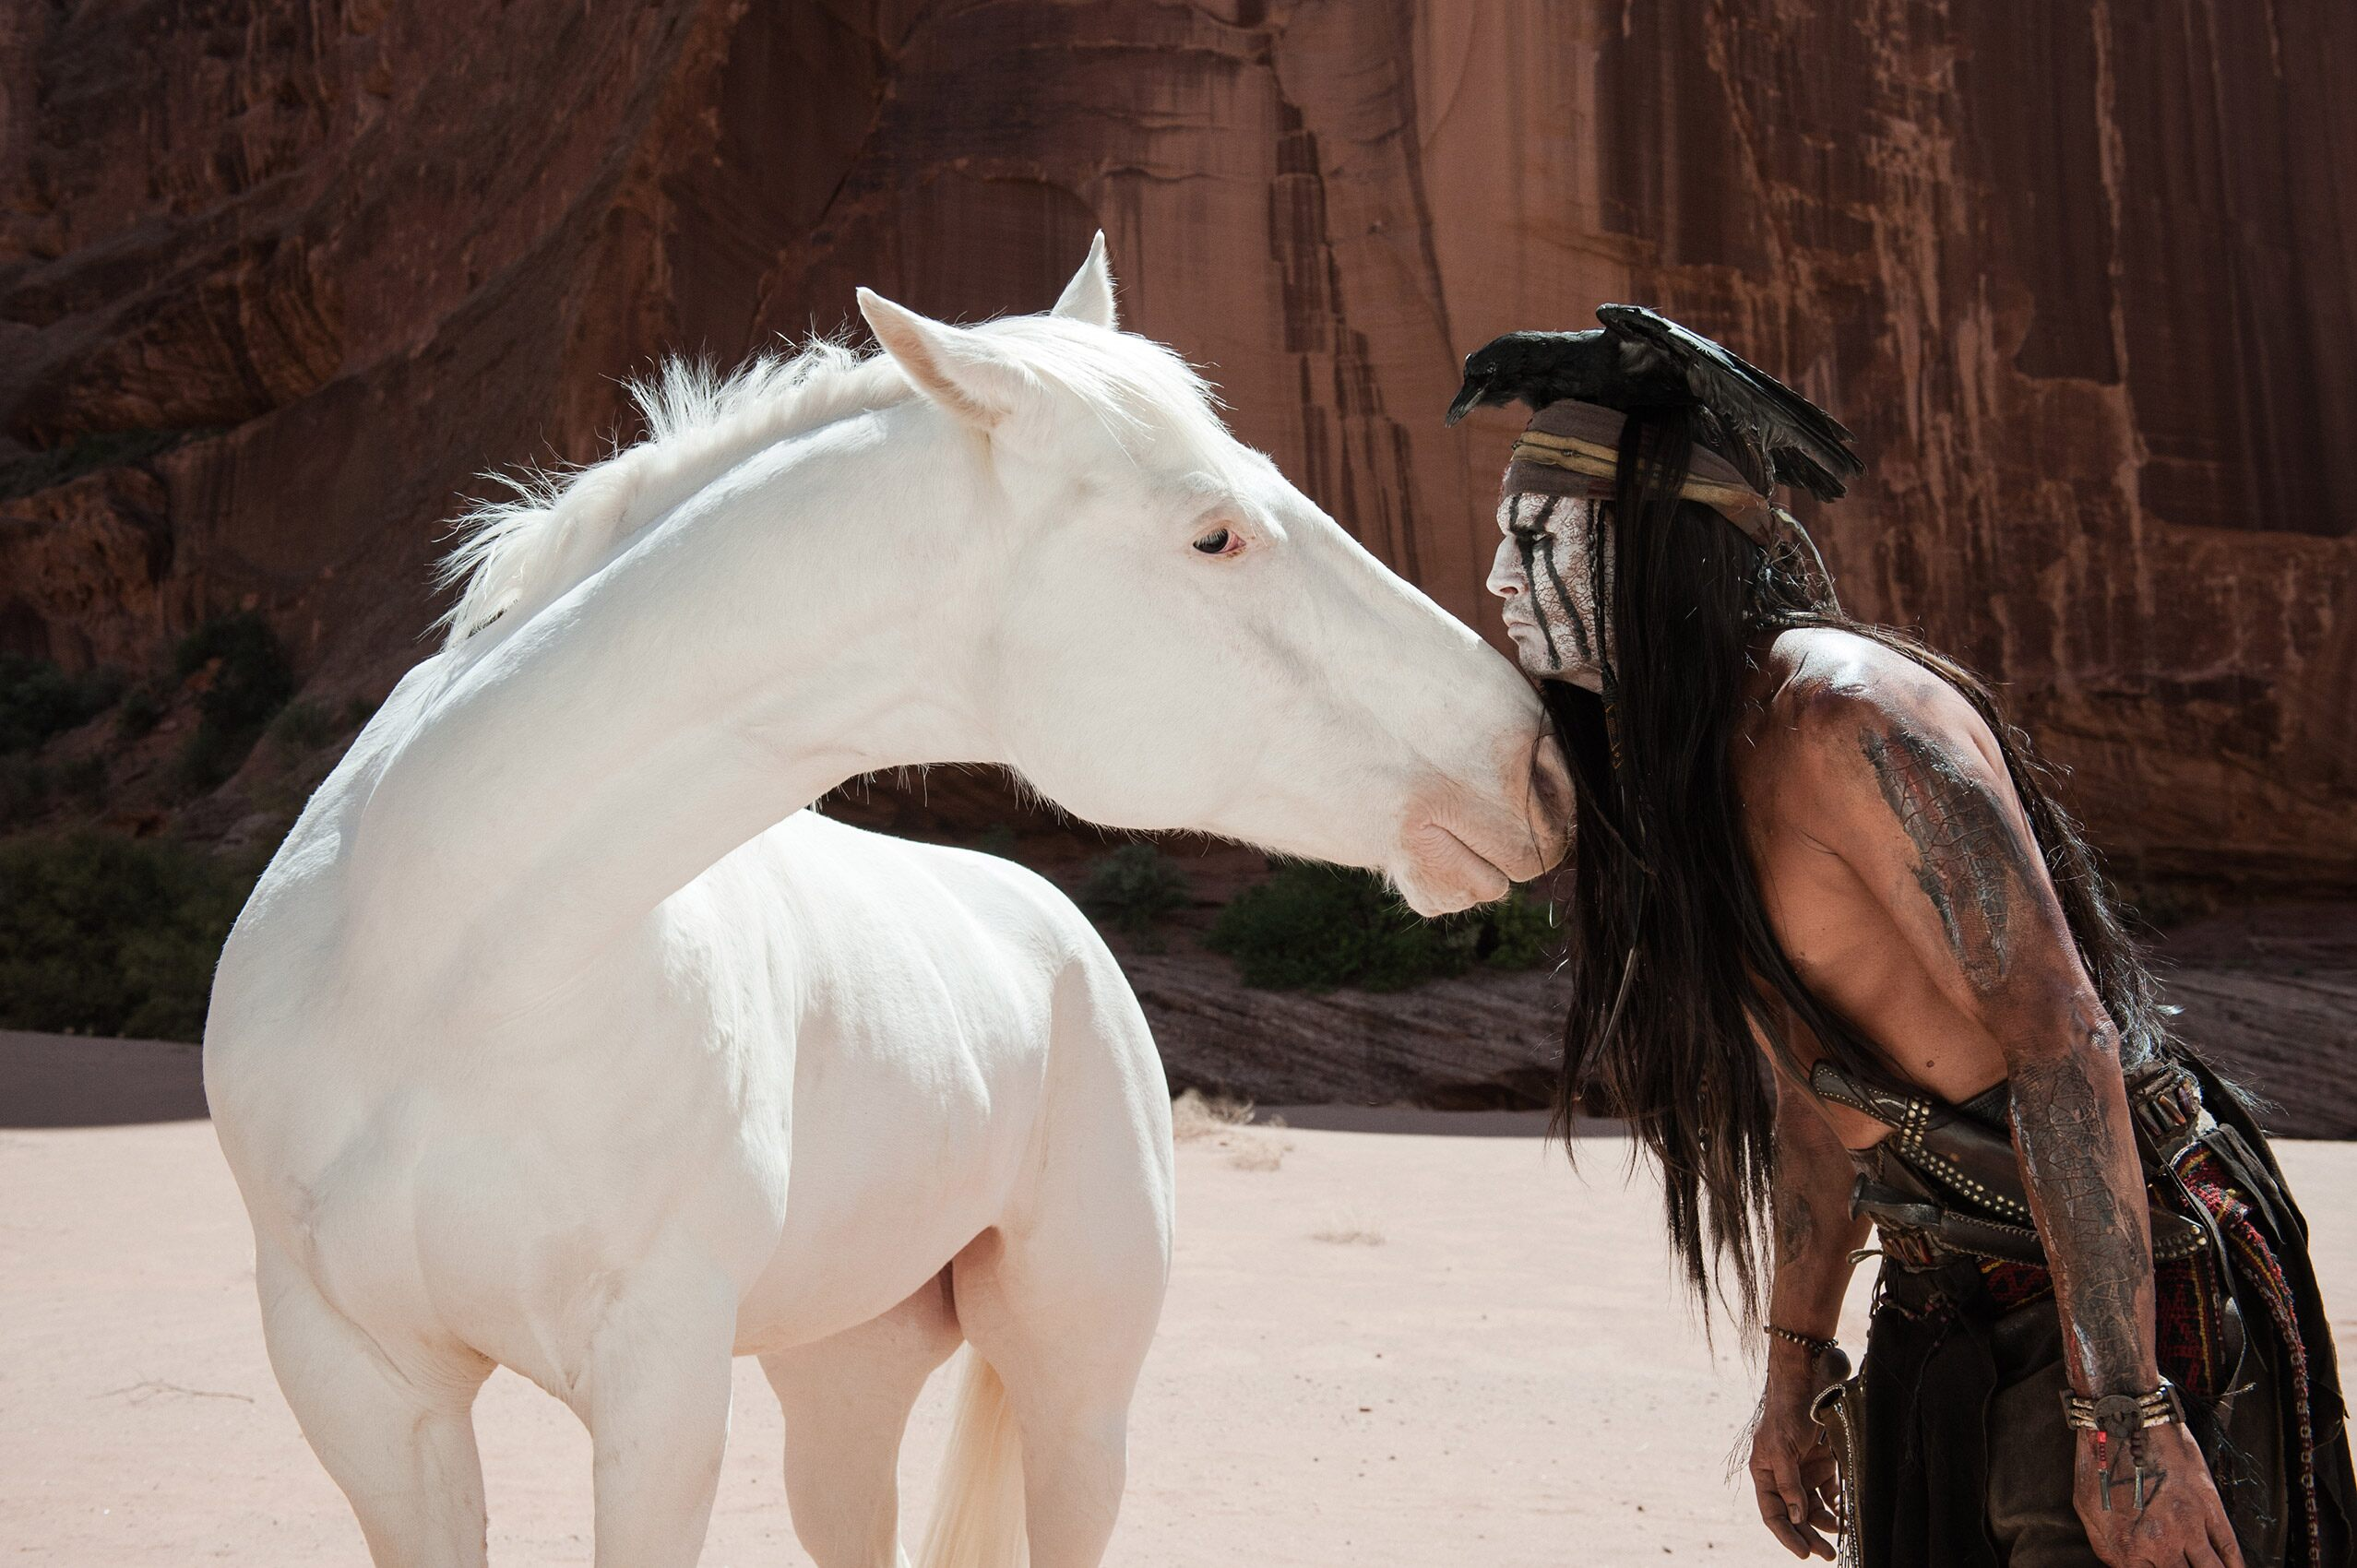 Silver and Johnny Depp as Tonto